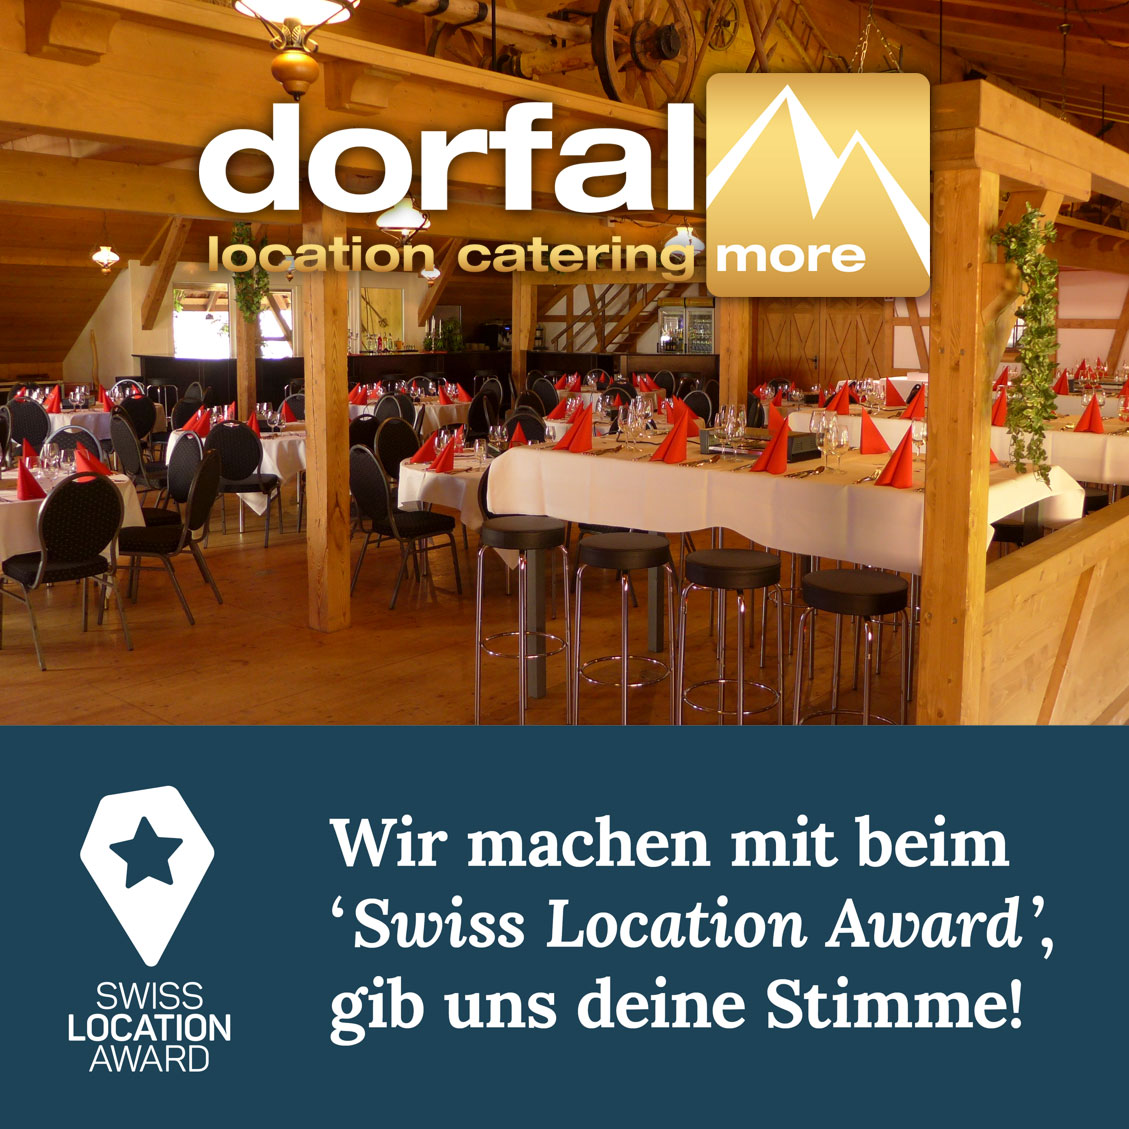 Dorfalm-SwissLocationAward